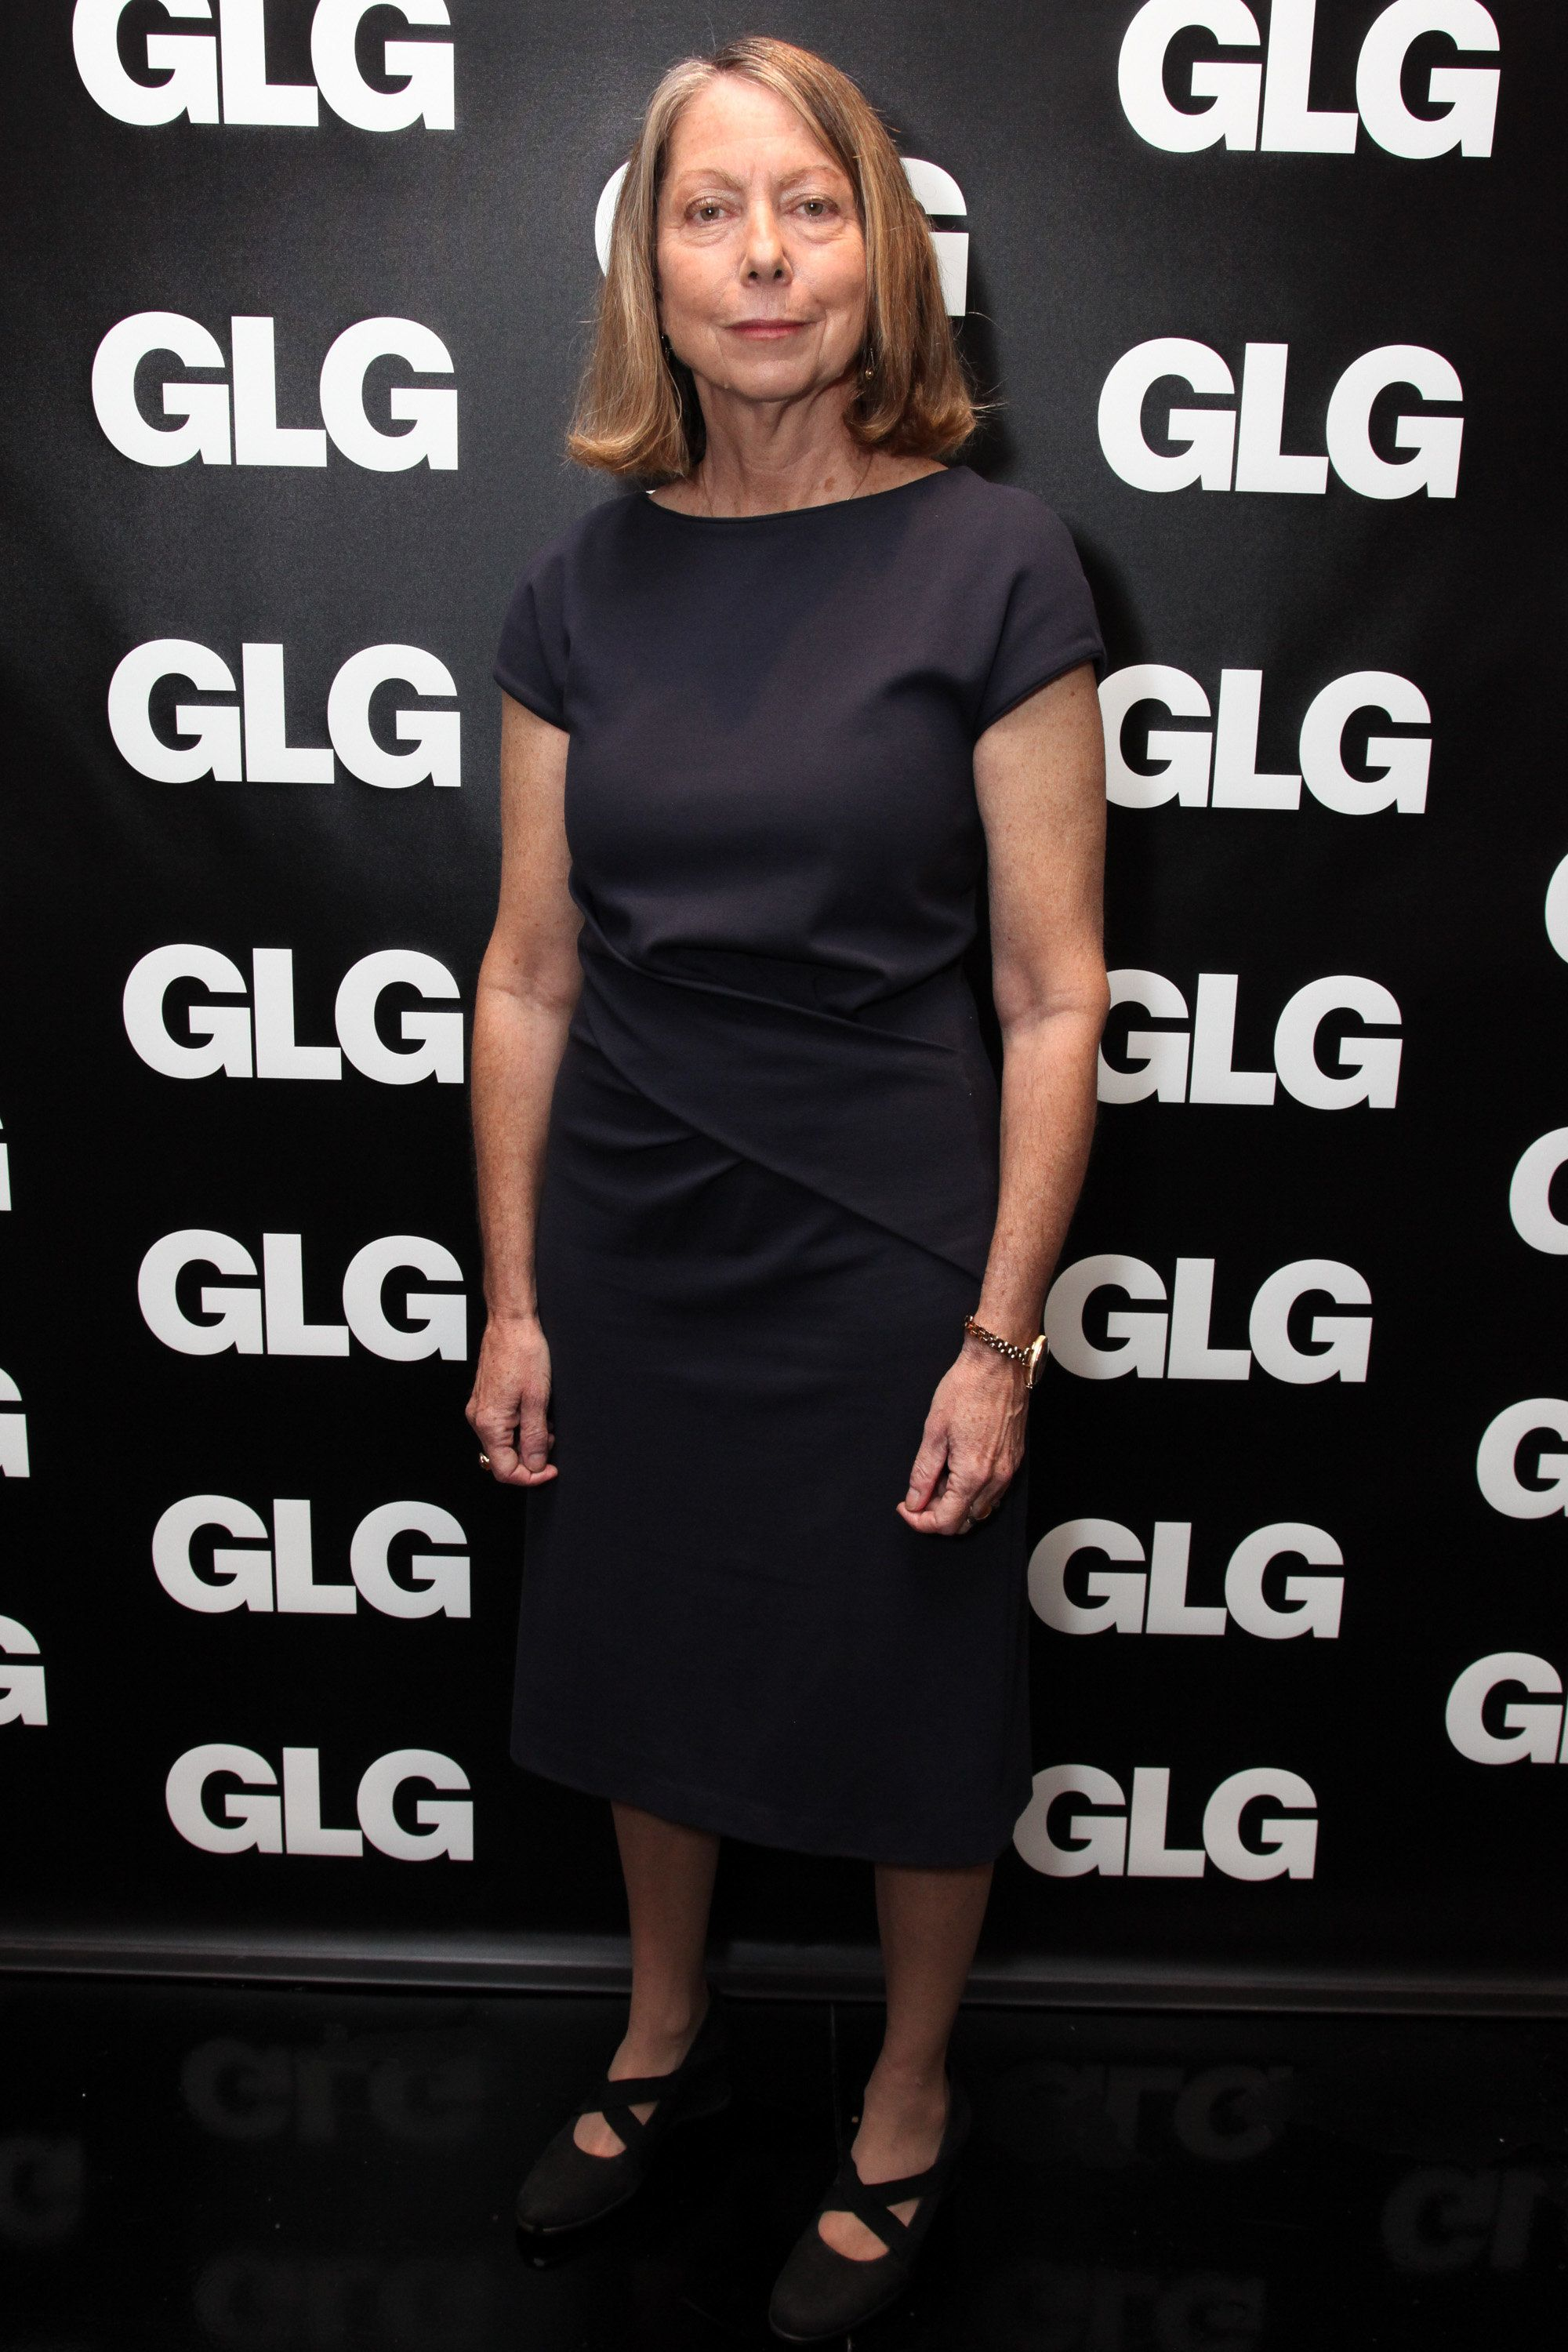 NEW YORK, NY - DECEMBER 10:  Jill Abramson, Former Executive Editor of the New York Times, visits GLG (Gerson Lehrman Group) on December 10, 2015 in New York City.  (Photo by Donald Bowers/Getty Images for GLG)